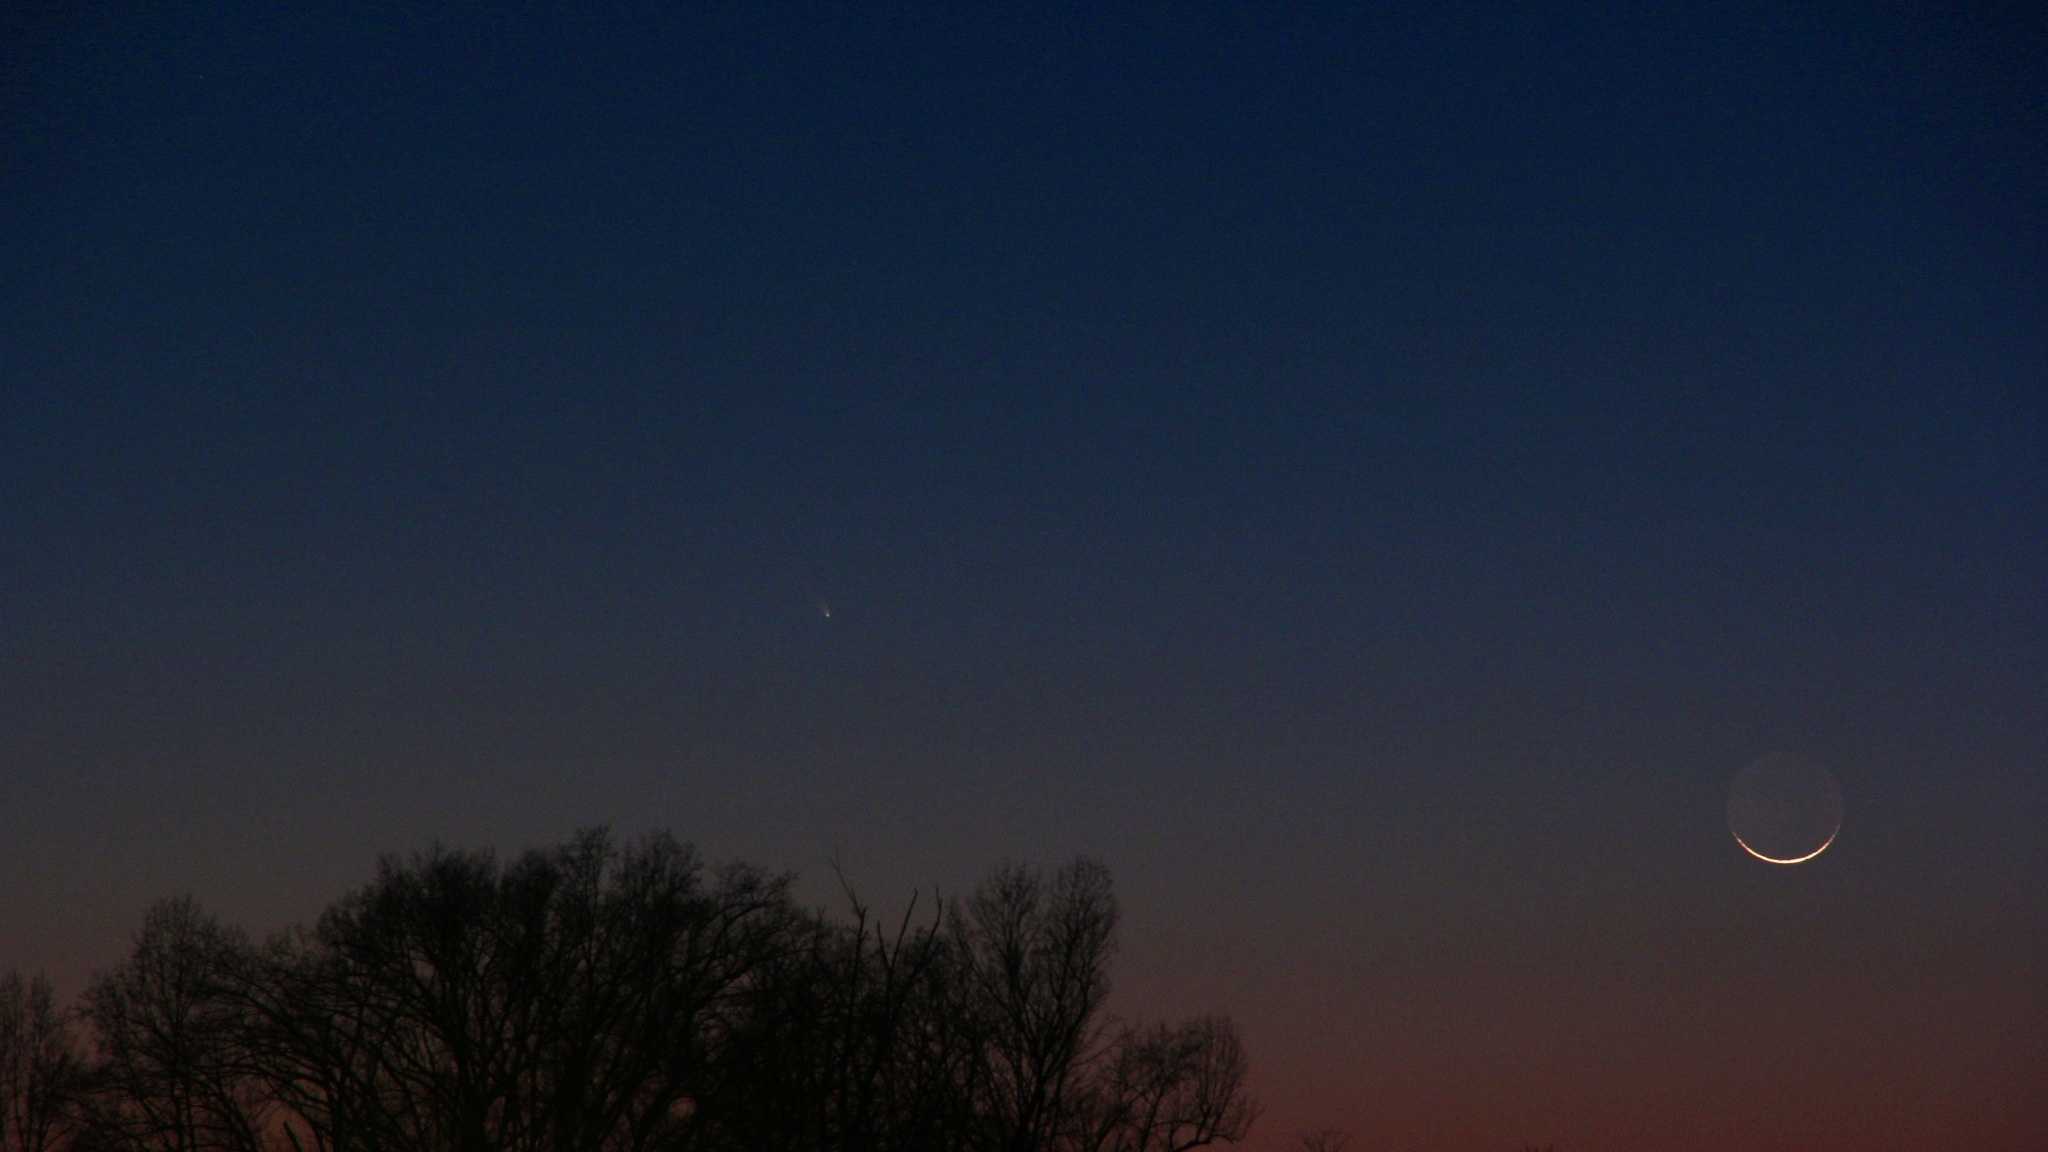 Pan-STARRS comet photo from viewer